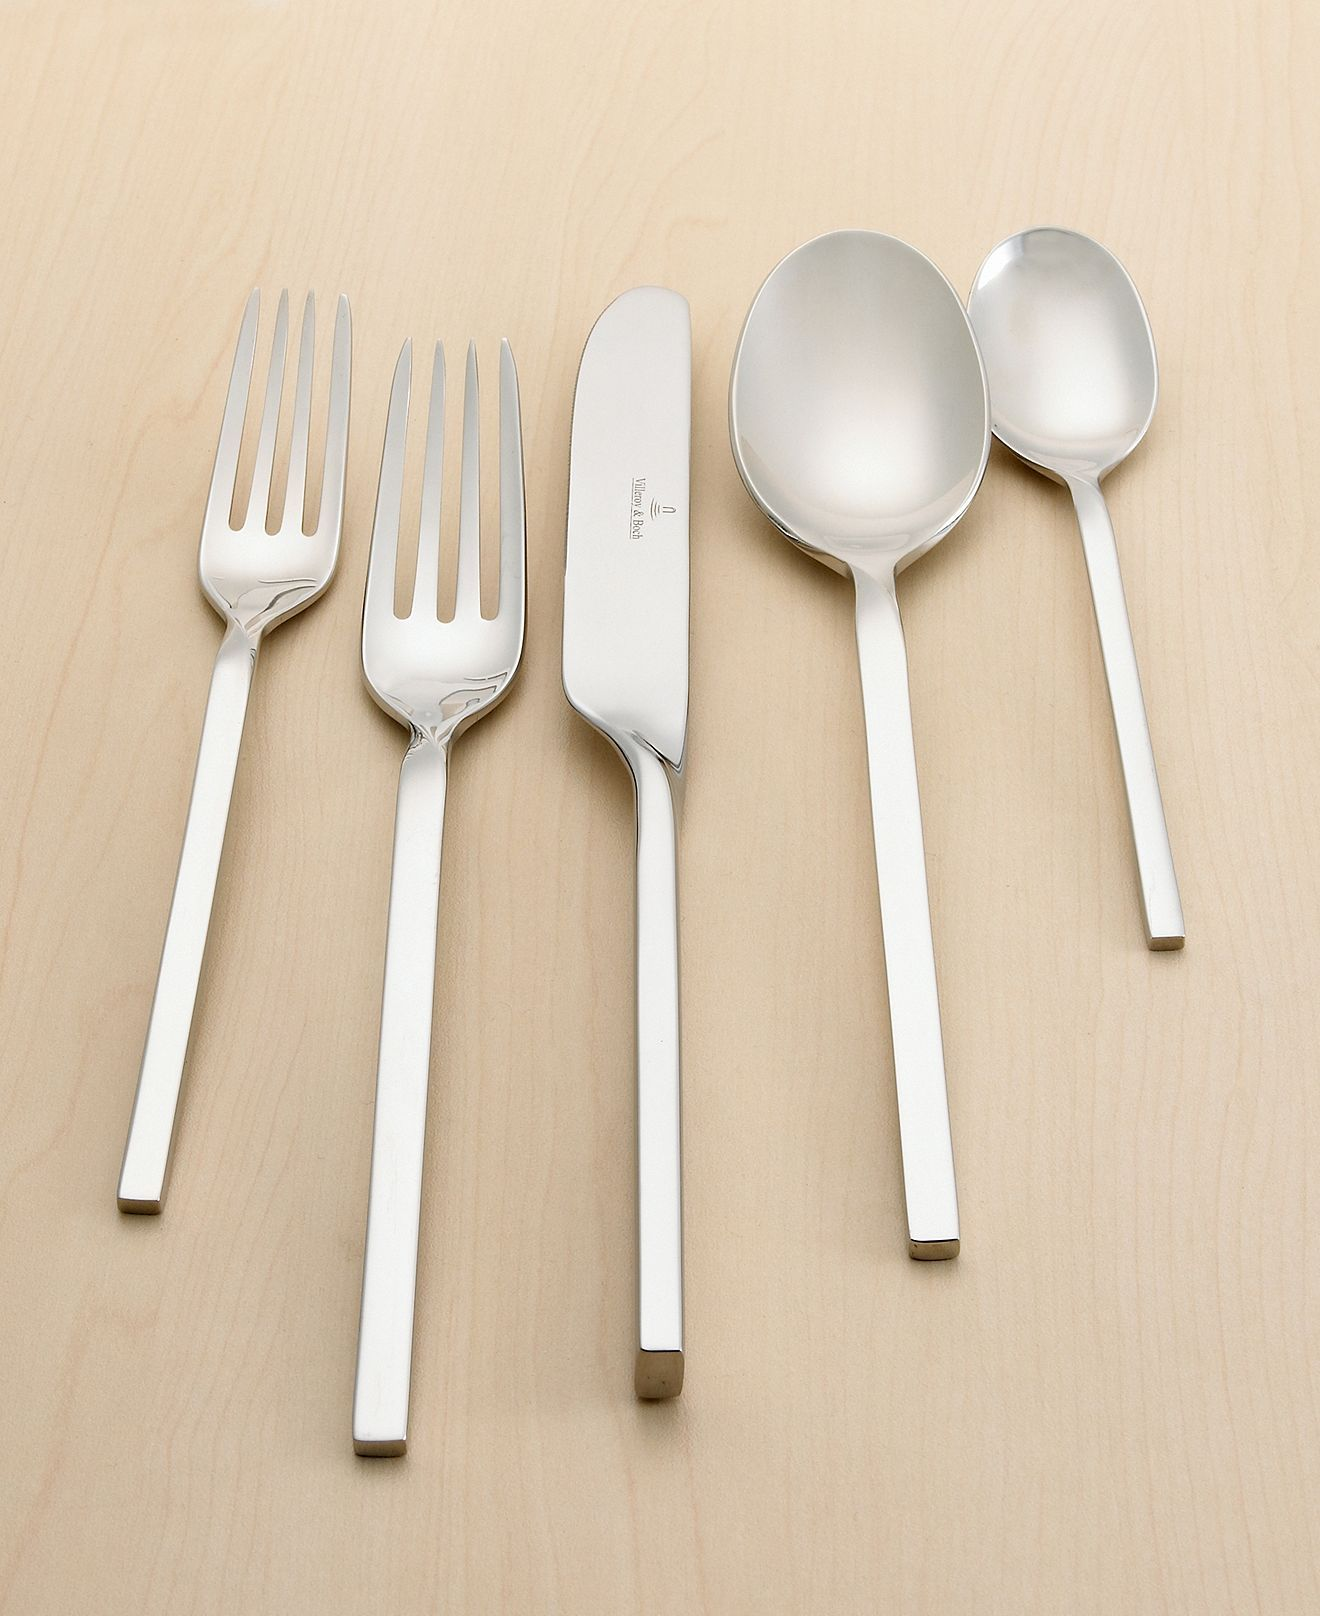 Villeroy and boch new wave set - Villeroy Boch New Wave Place Setting Flatware Silverware Dining Entertaining Macy S Bridal And Wedding Registry